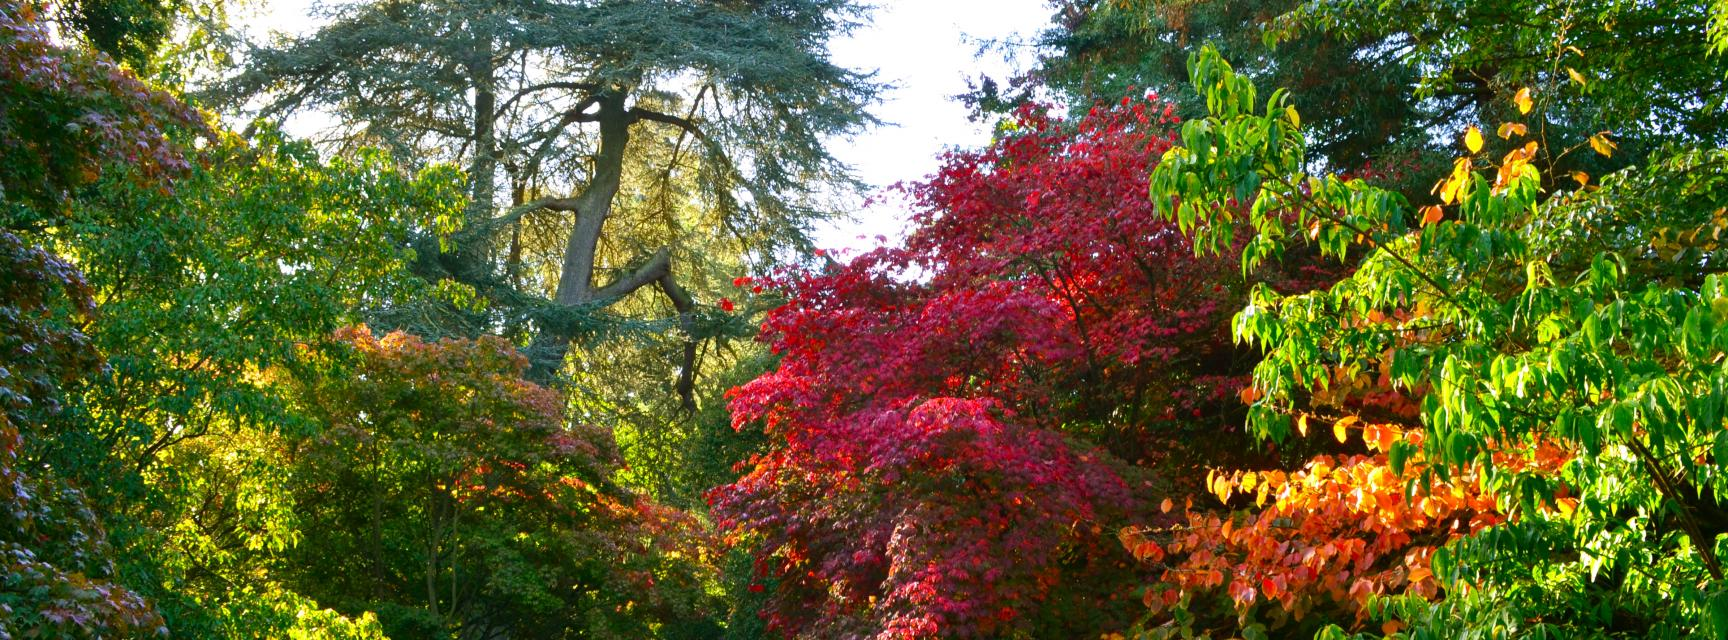 Autumn Colour in the Acer Glade